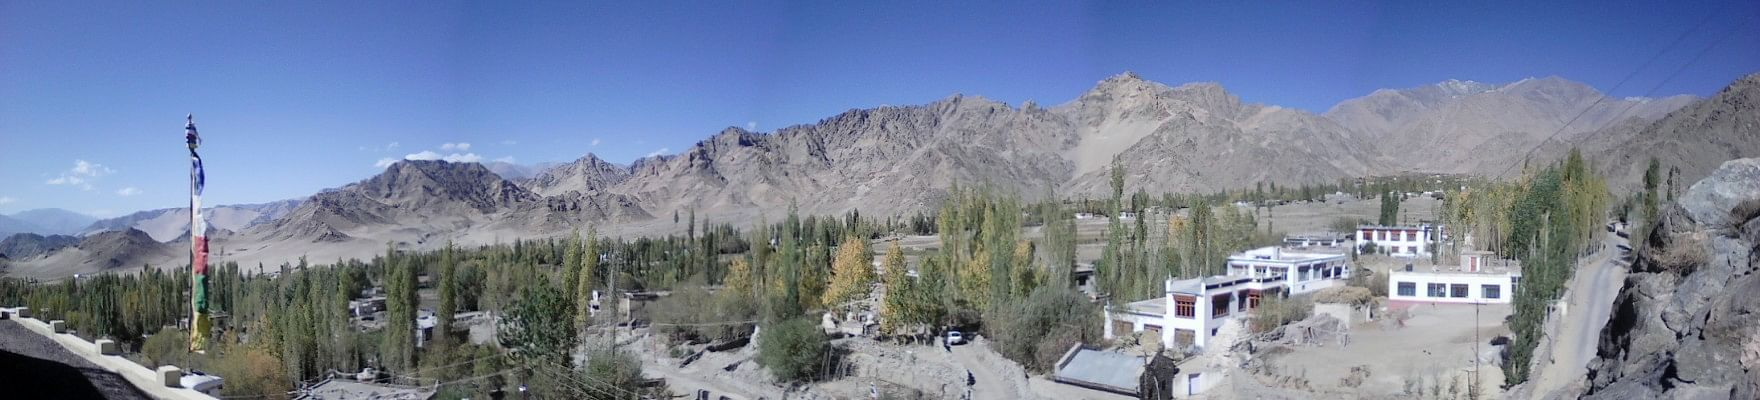 Panorama of Leh Valley, Ladakh